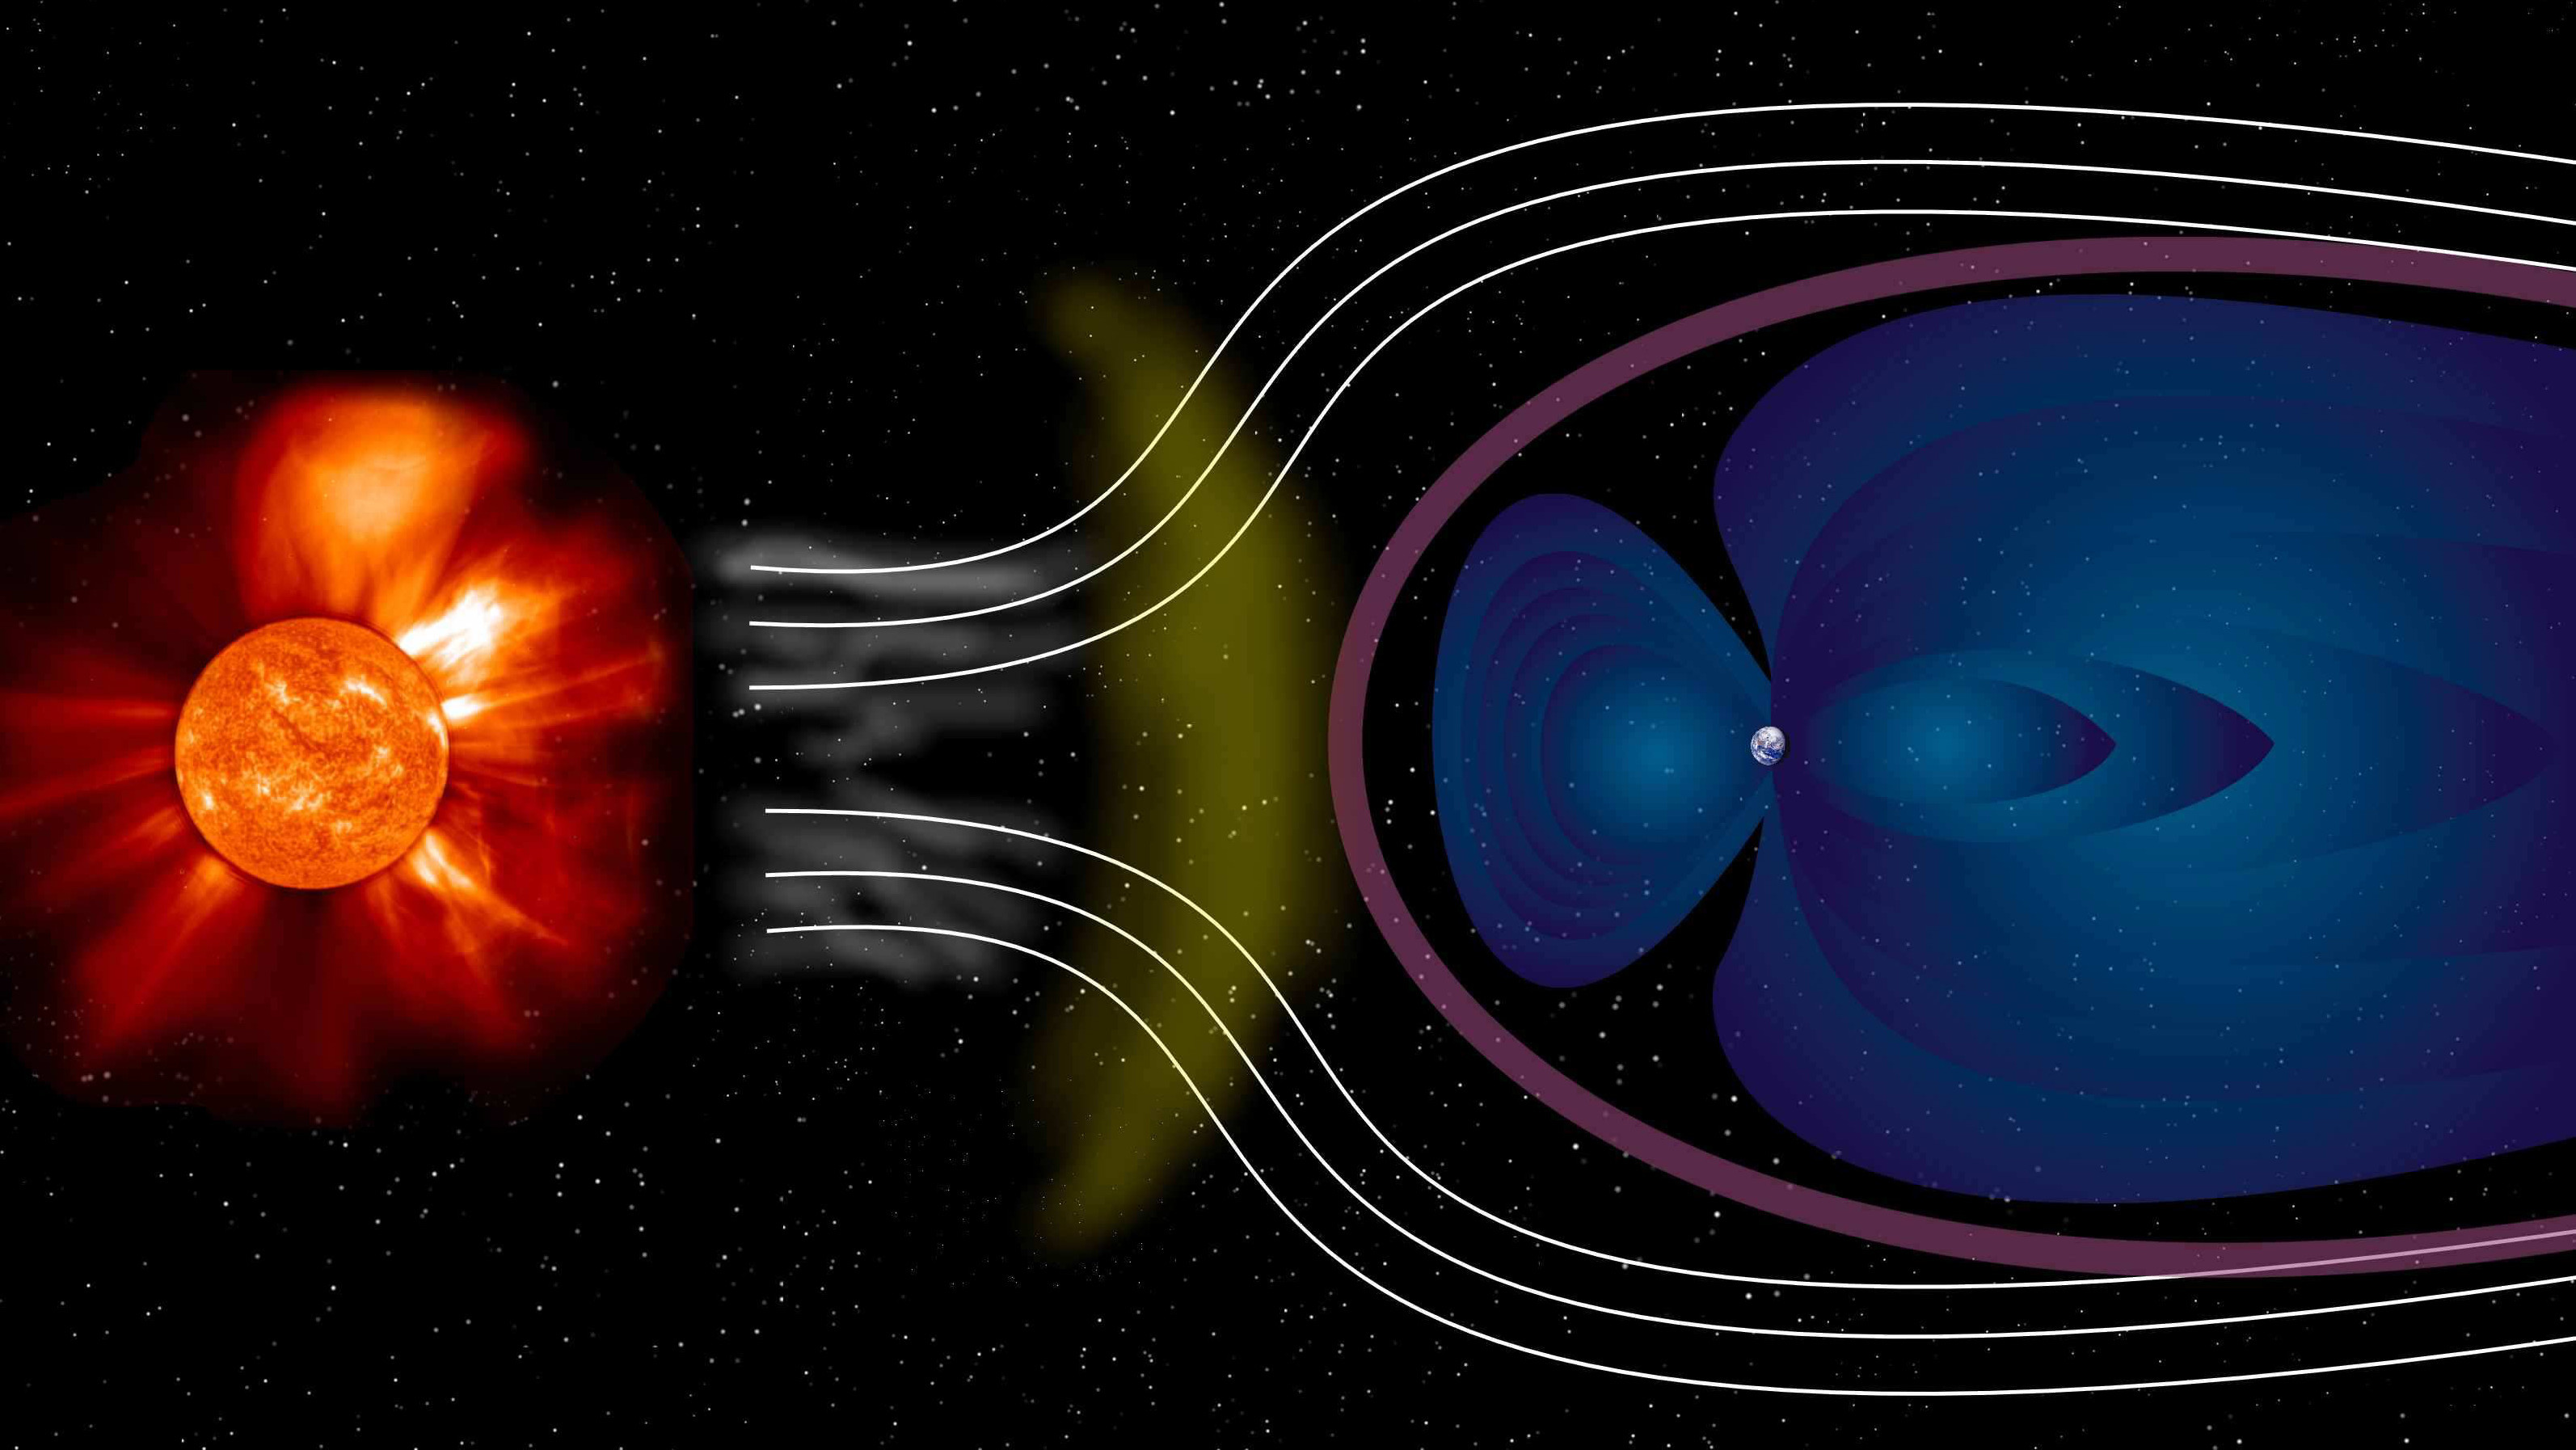 Earth's protective barrier – the magnetosphere – shields it from some of the effects of the supersonic solar wind. Studying the interaction between this wind and the magnetosphere is important for our understanding of space weather. Credit: ESA